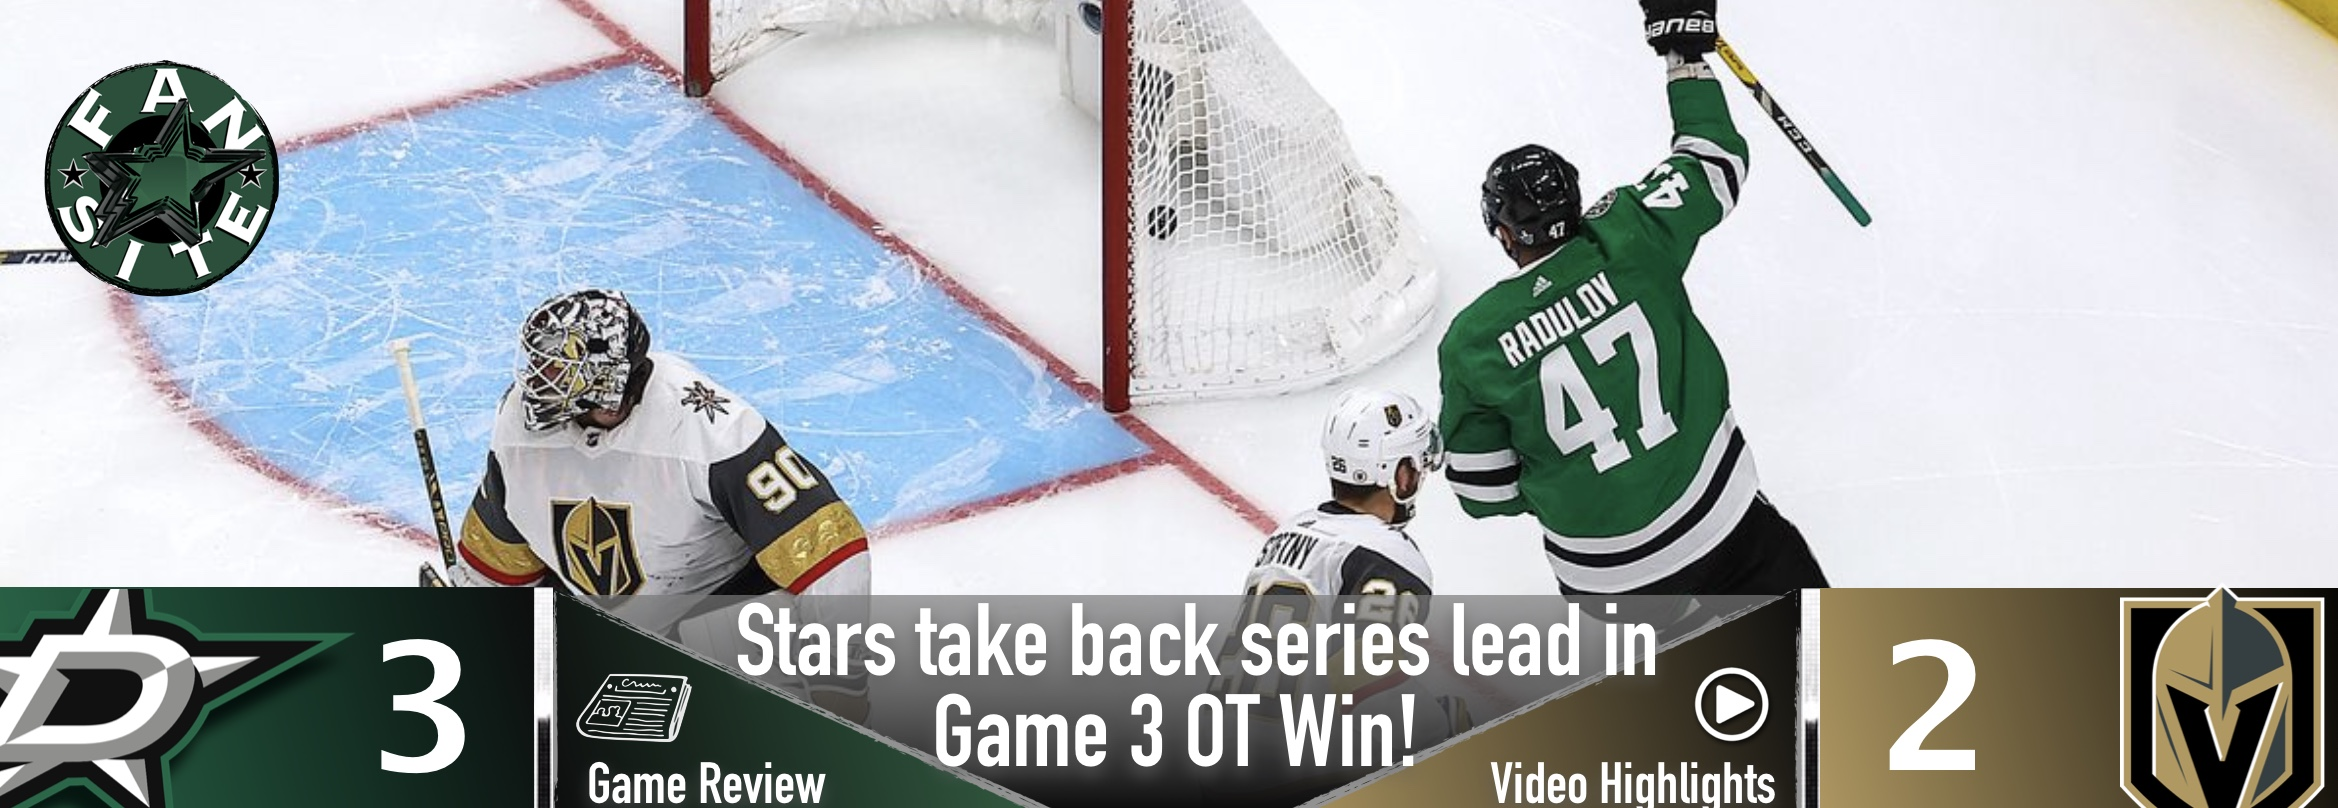 Stars take back series lead in Game 3 OT Win